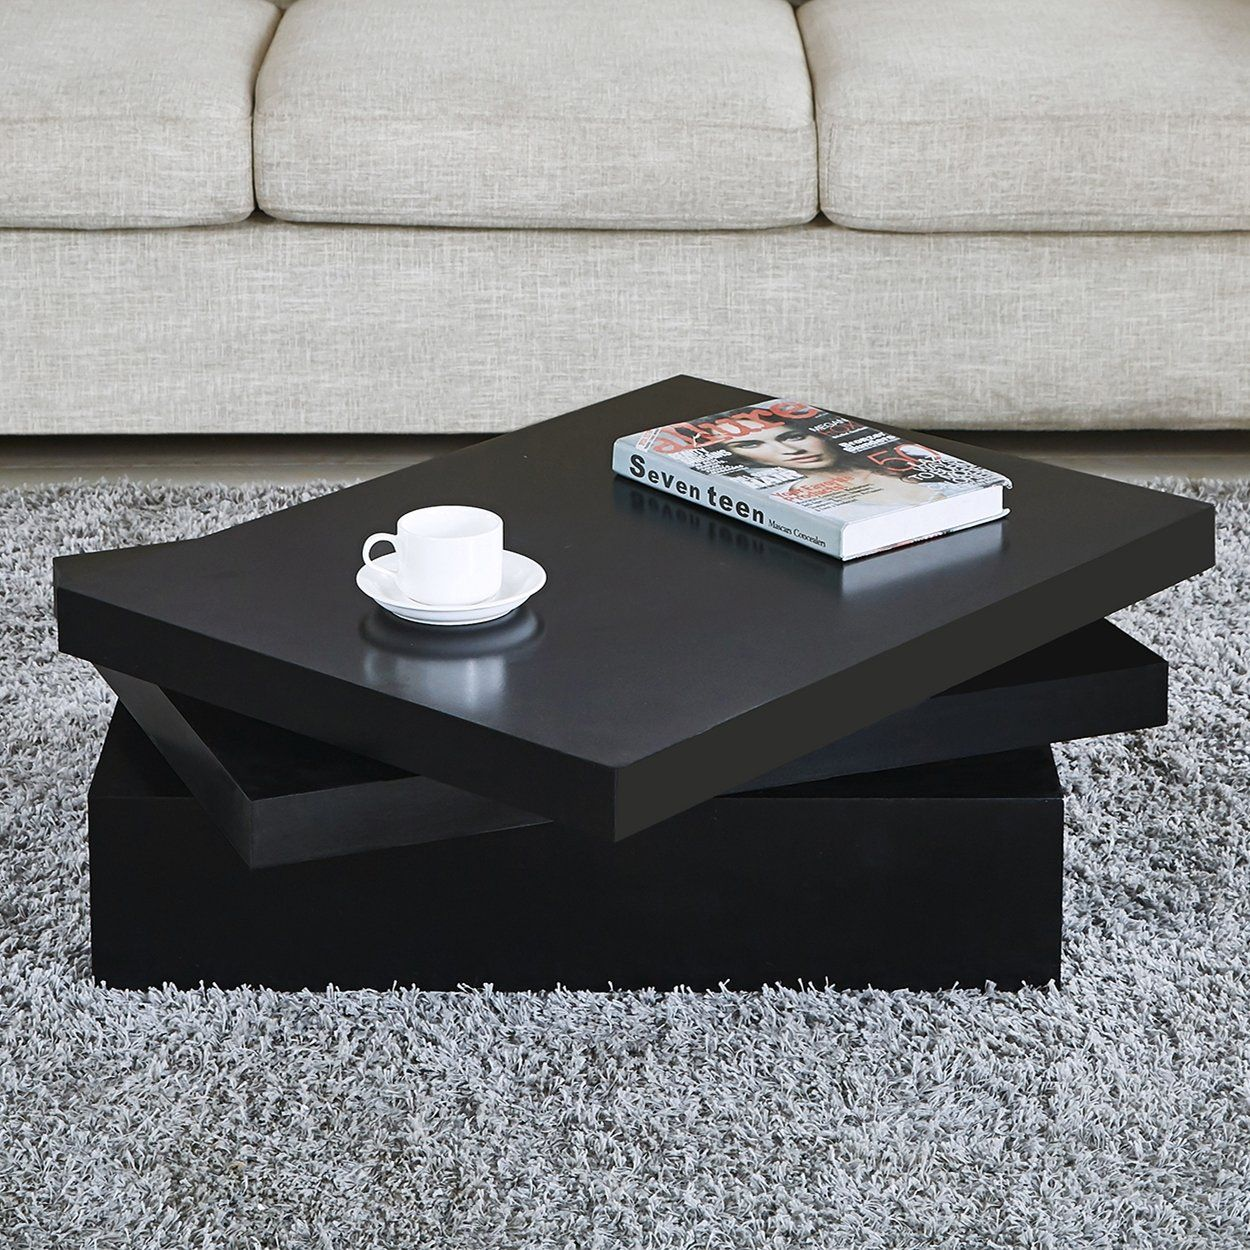 Sensational Newretailglobal Black Square Coffee Tables Rotating Cjindustries Chair Design For Home Cjindustriesco